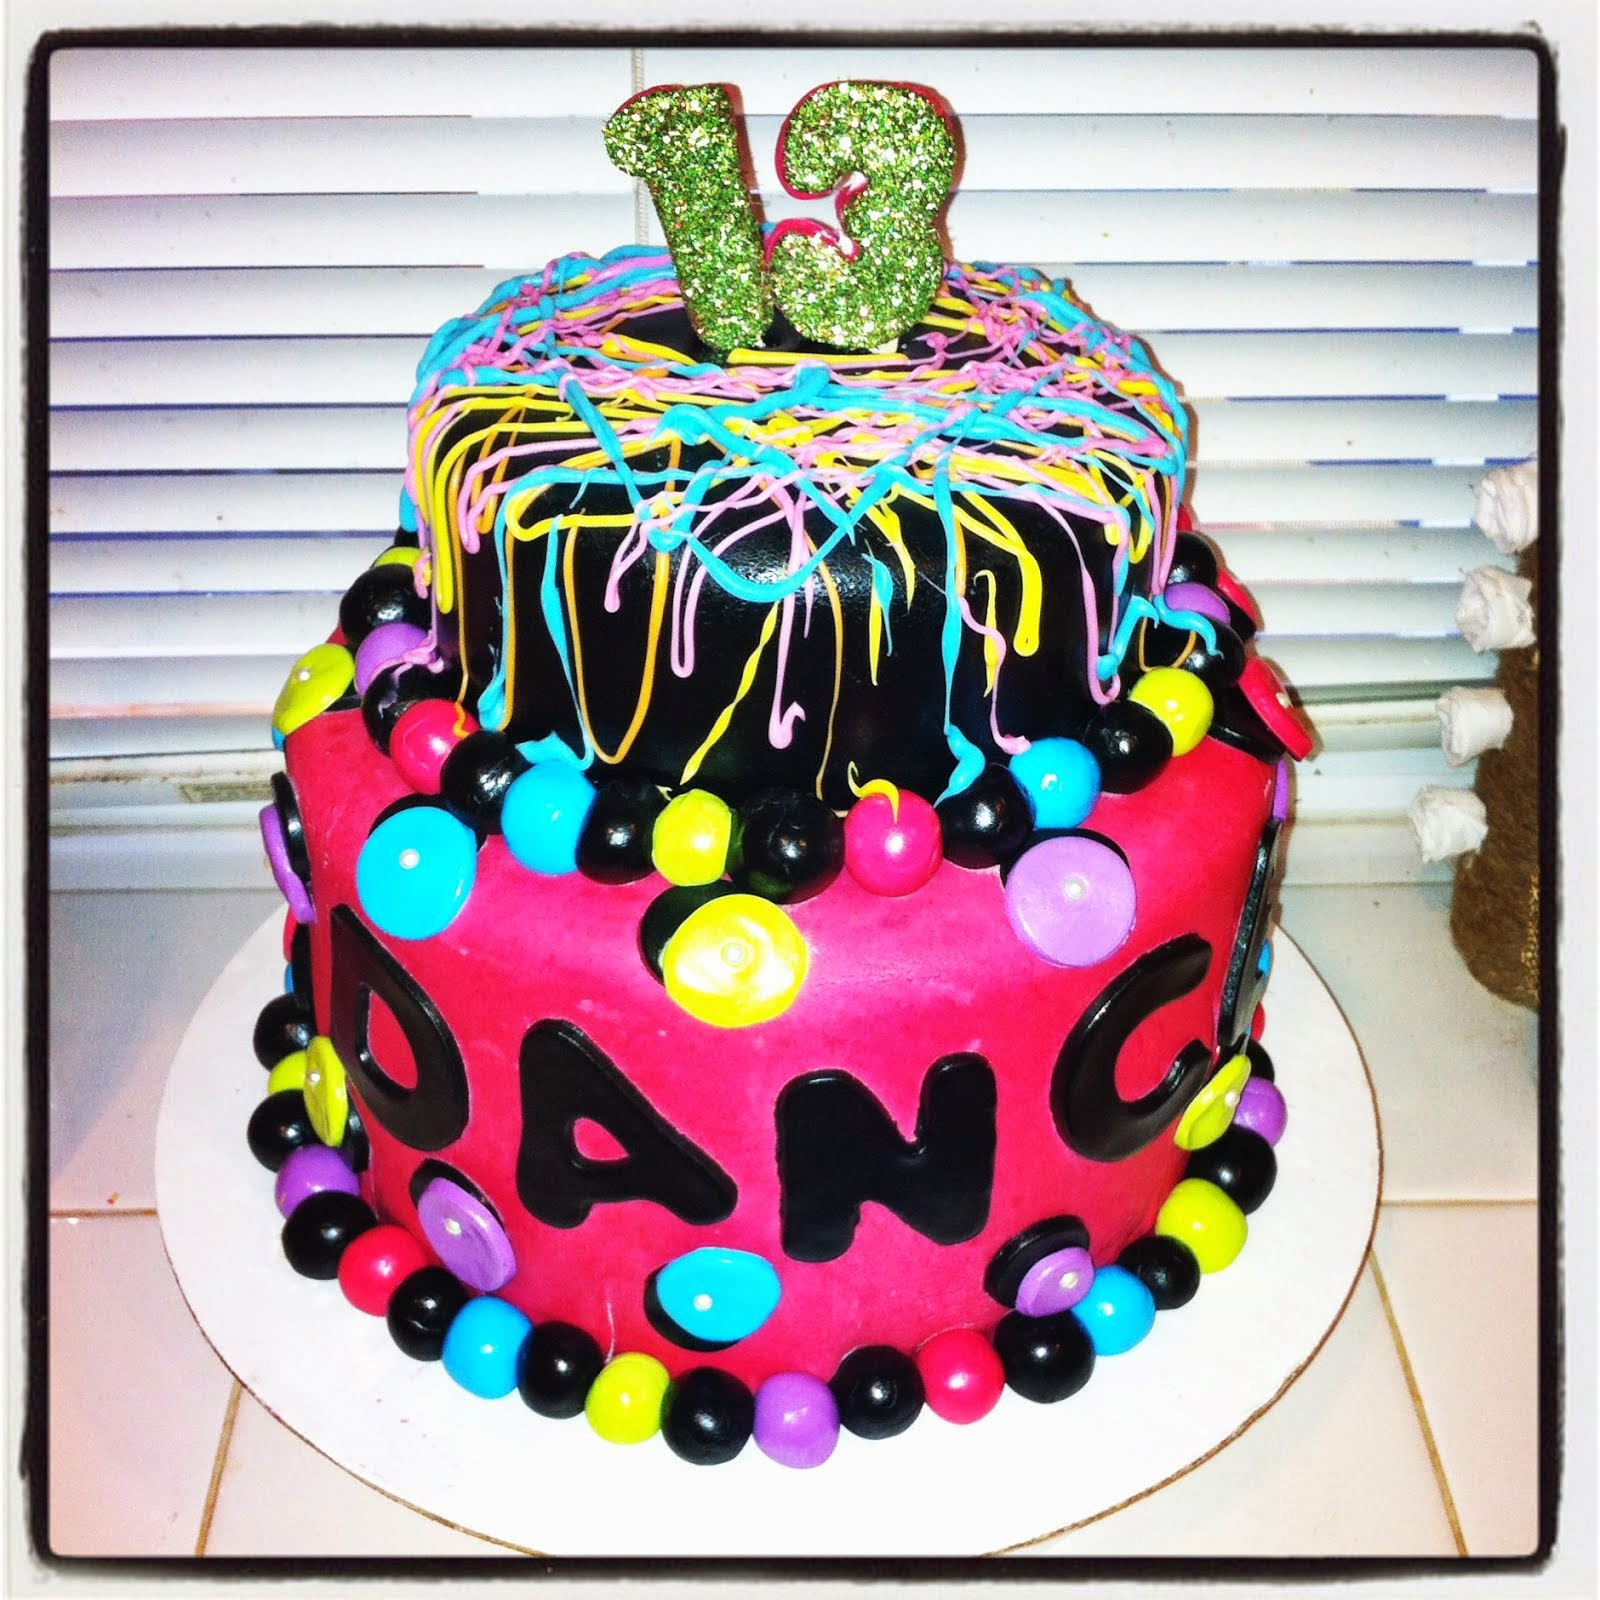 NEON DANCE PARTY CAKE